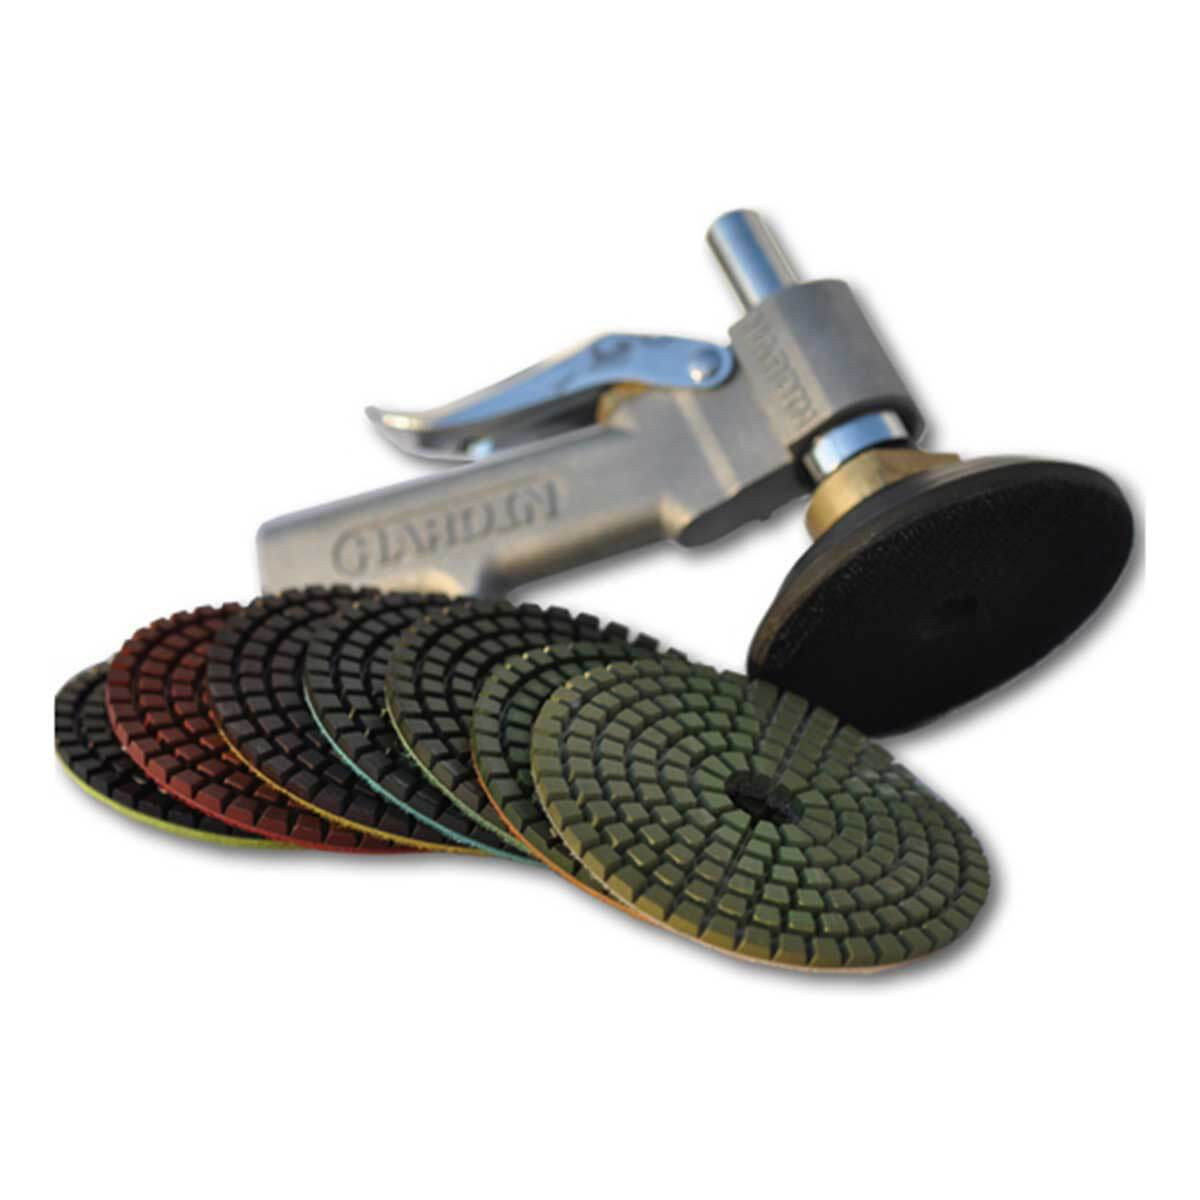 water feed tool with polishing pads